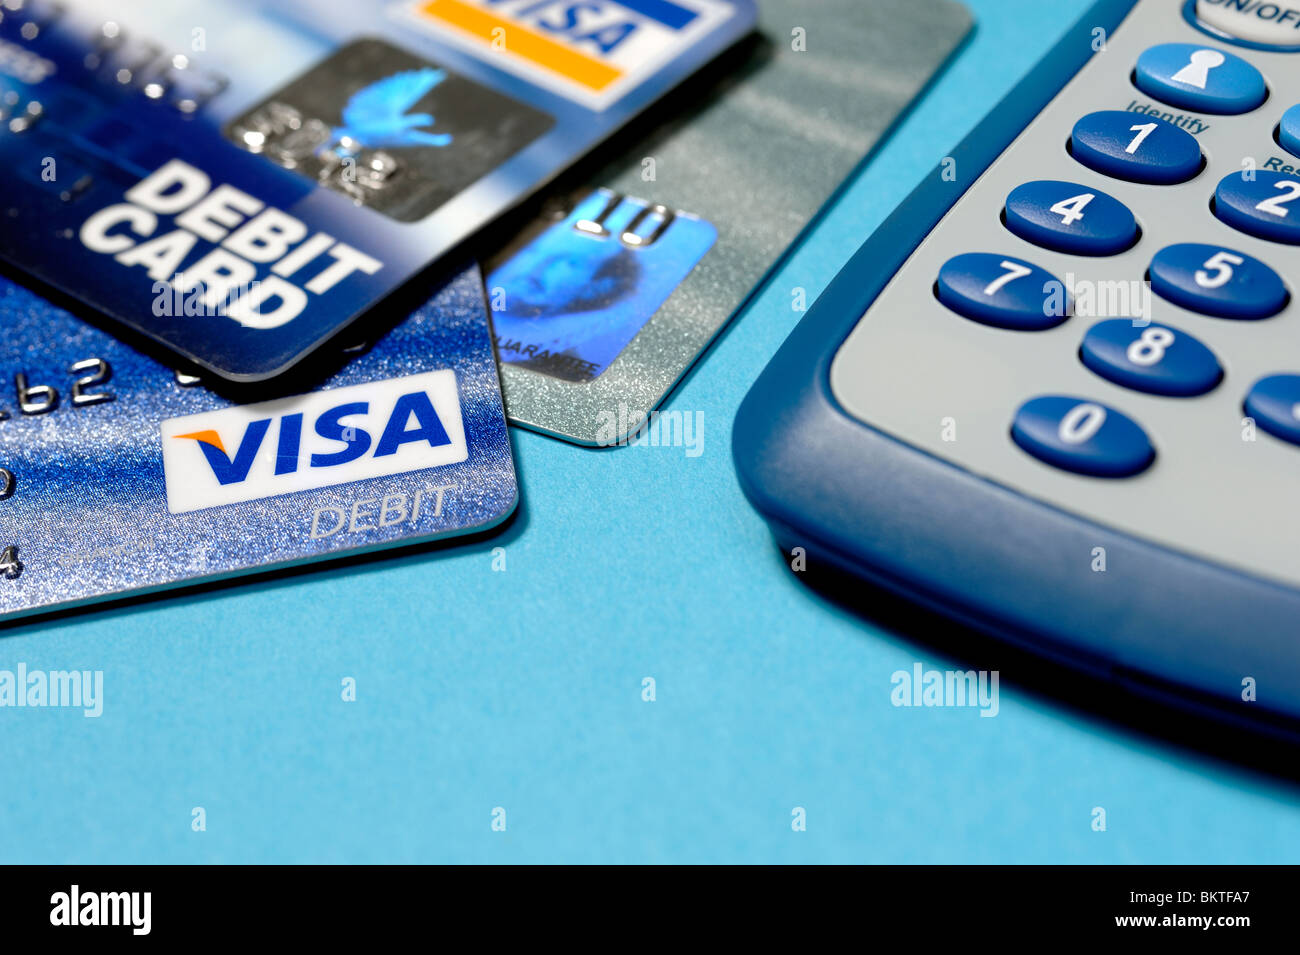 Credit cards and calculator - Stock Image